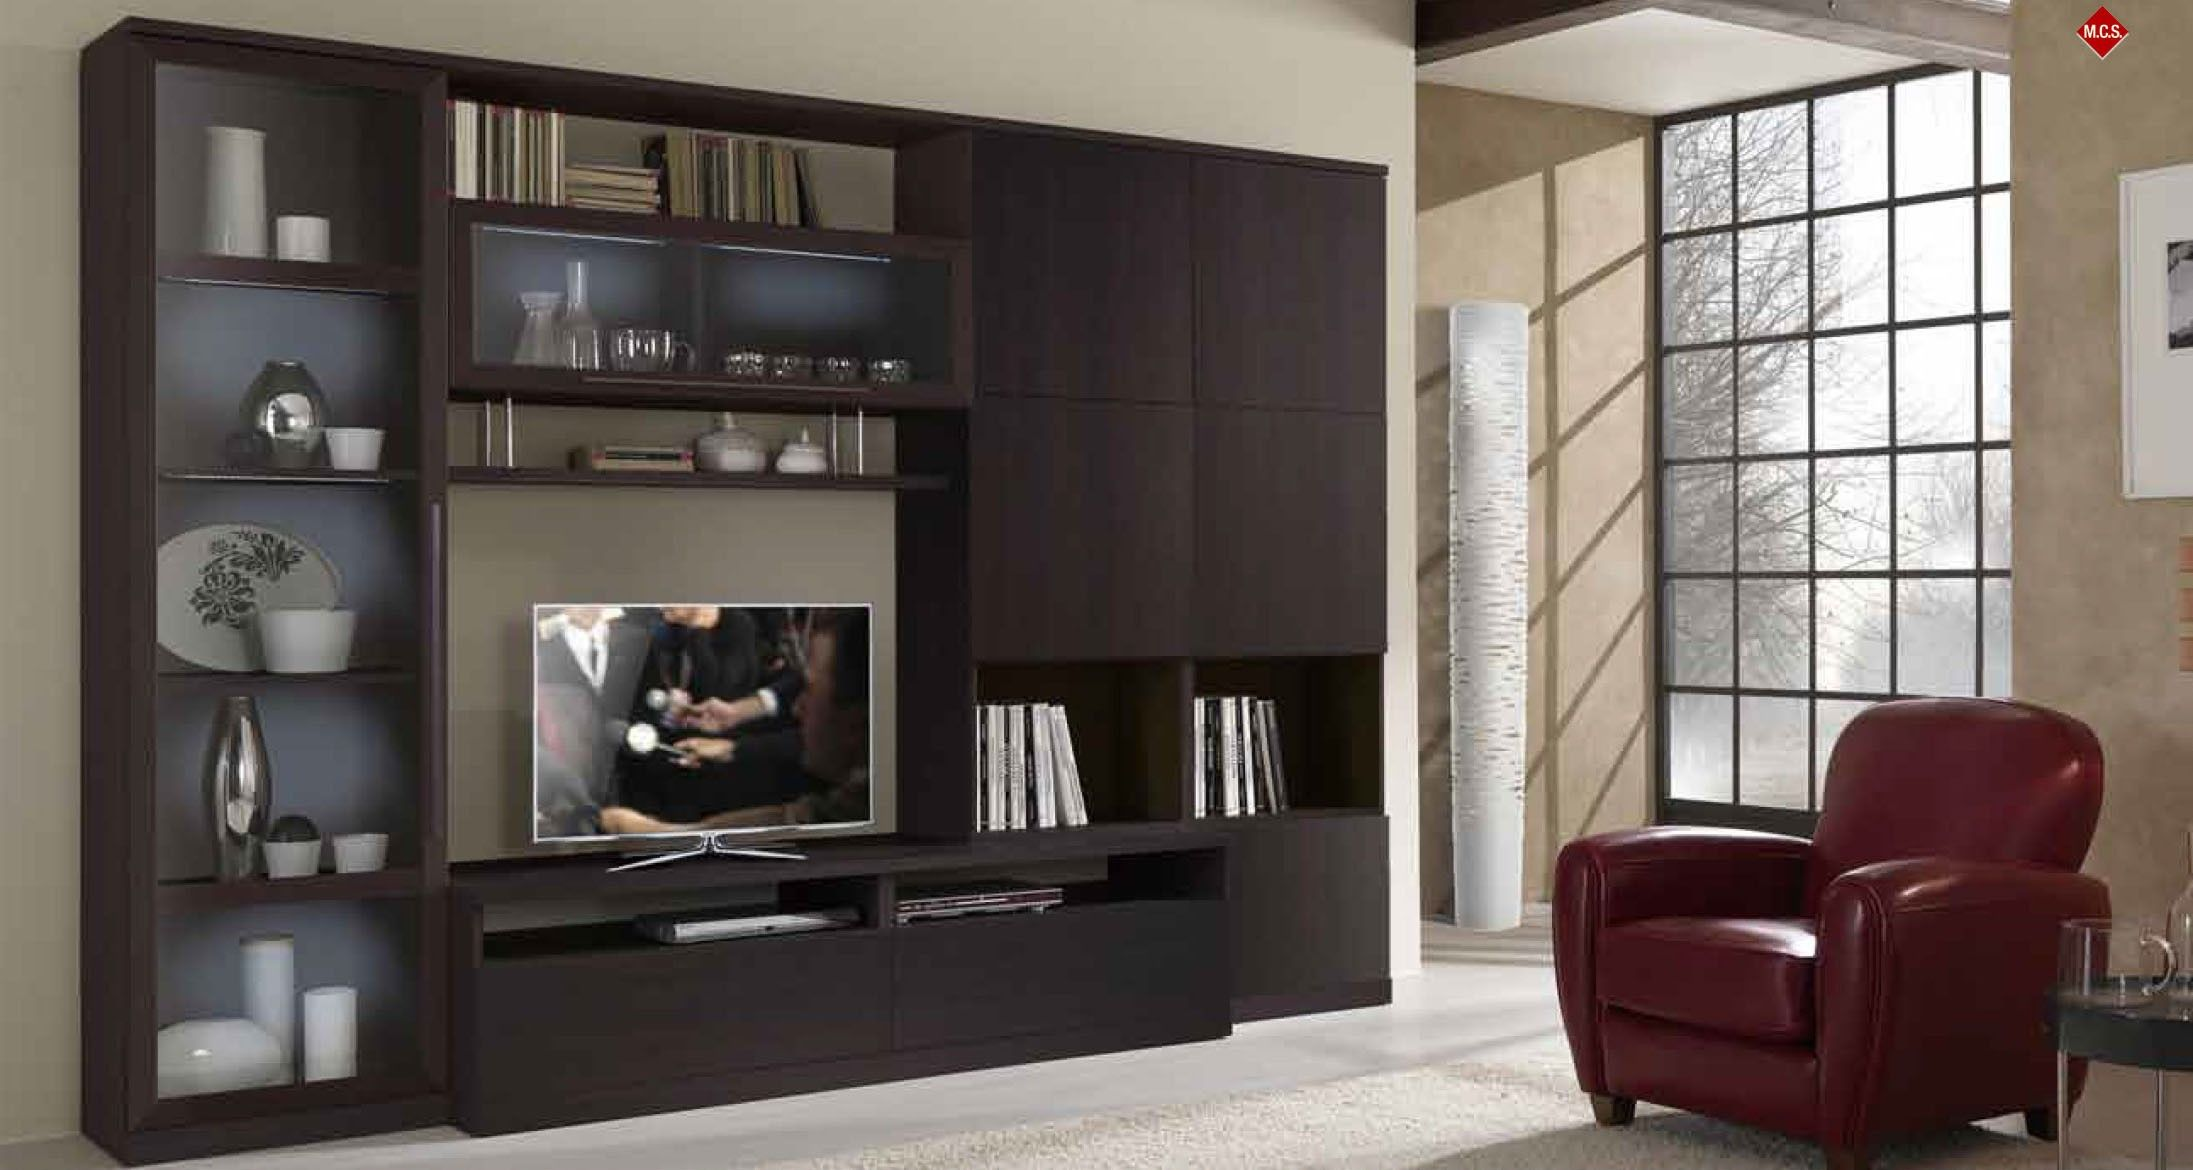 Tv Unit Ideas Wall Mounted Designs Design For Living Room Cabinet Showcase Hall Cupboard